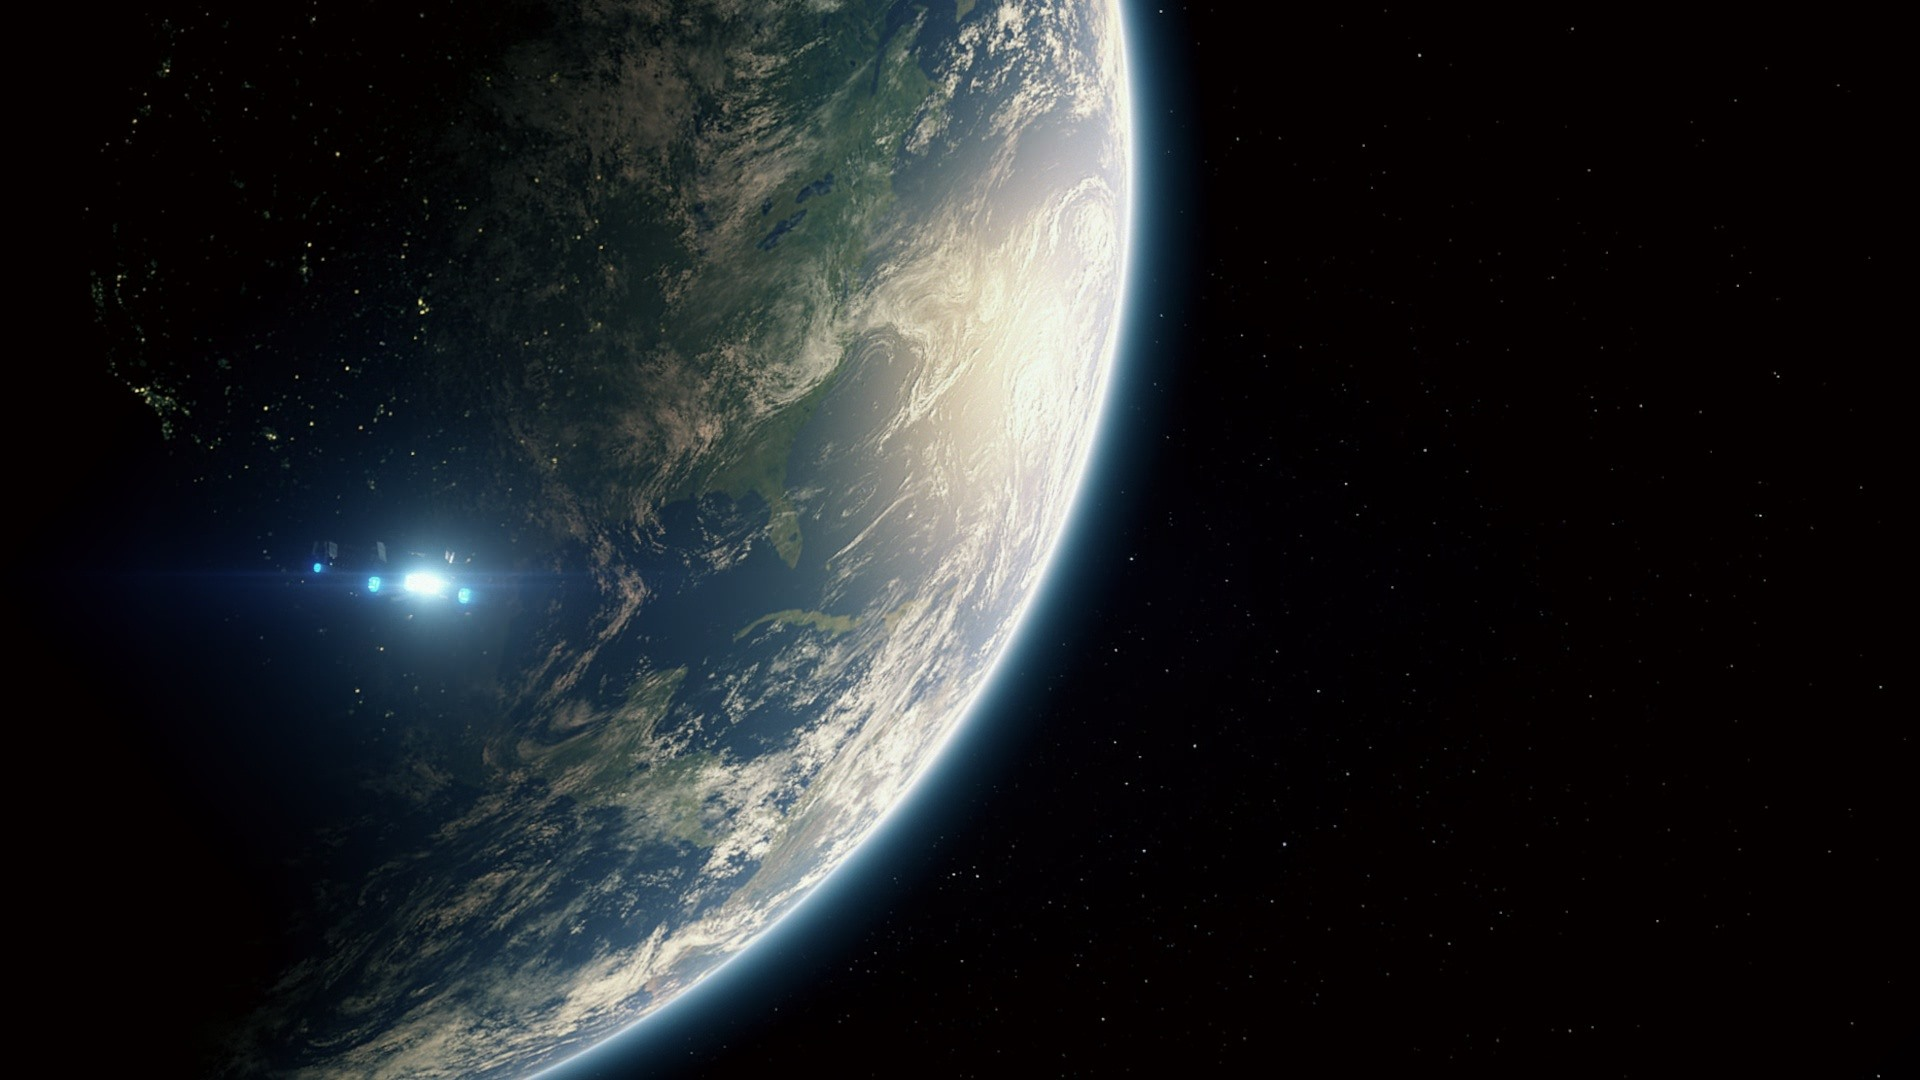 Wallpaper Earth Planet Spaceship Universe 1920x1080 Full